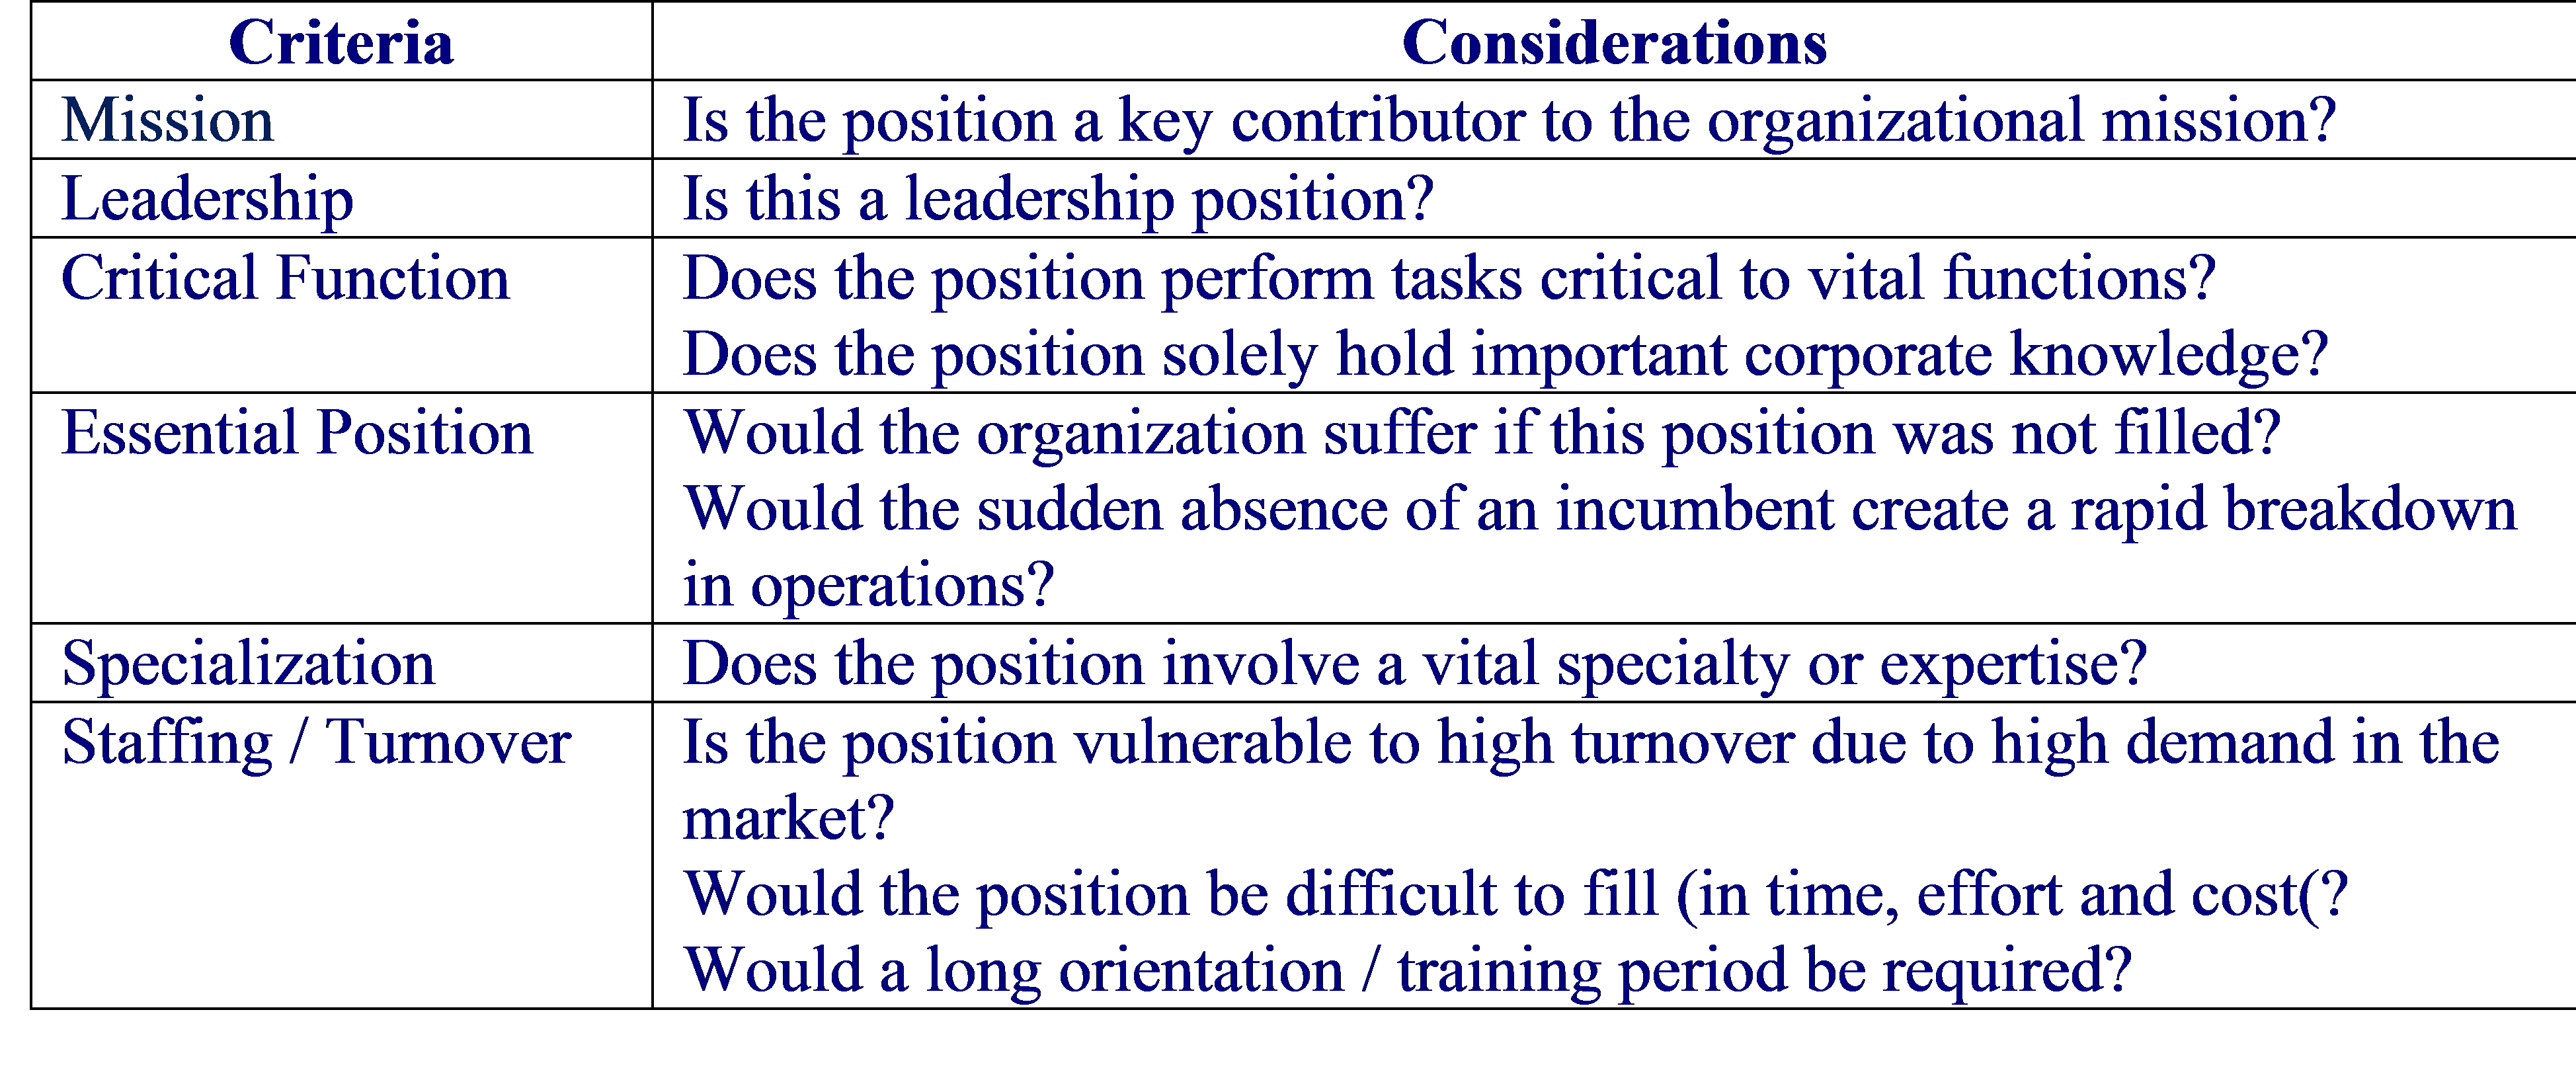 considerations table